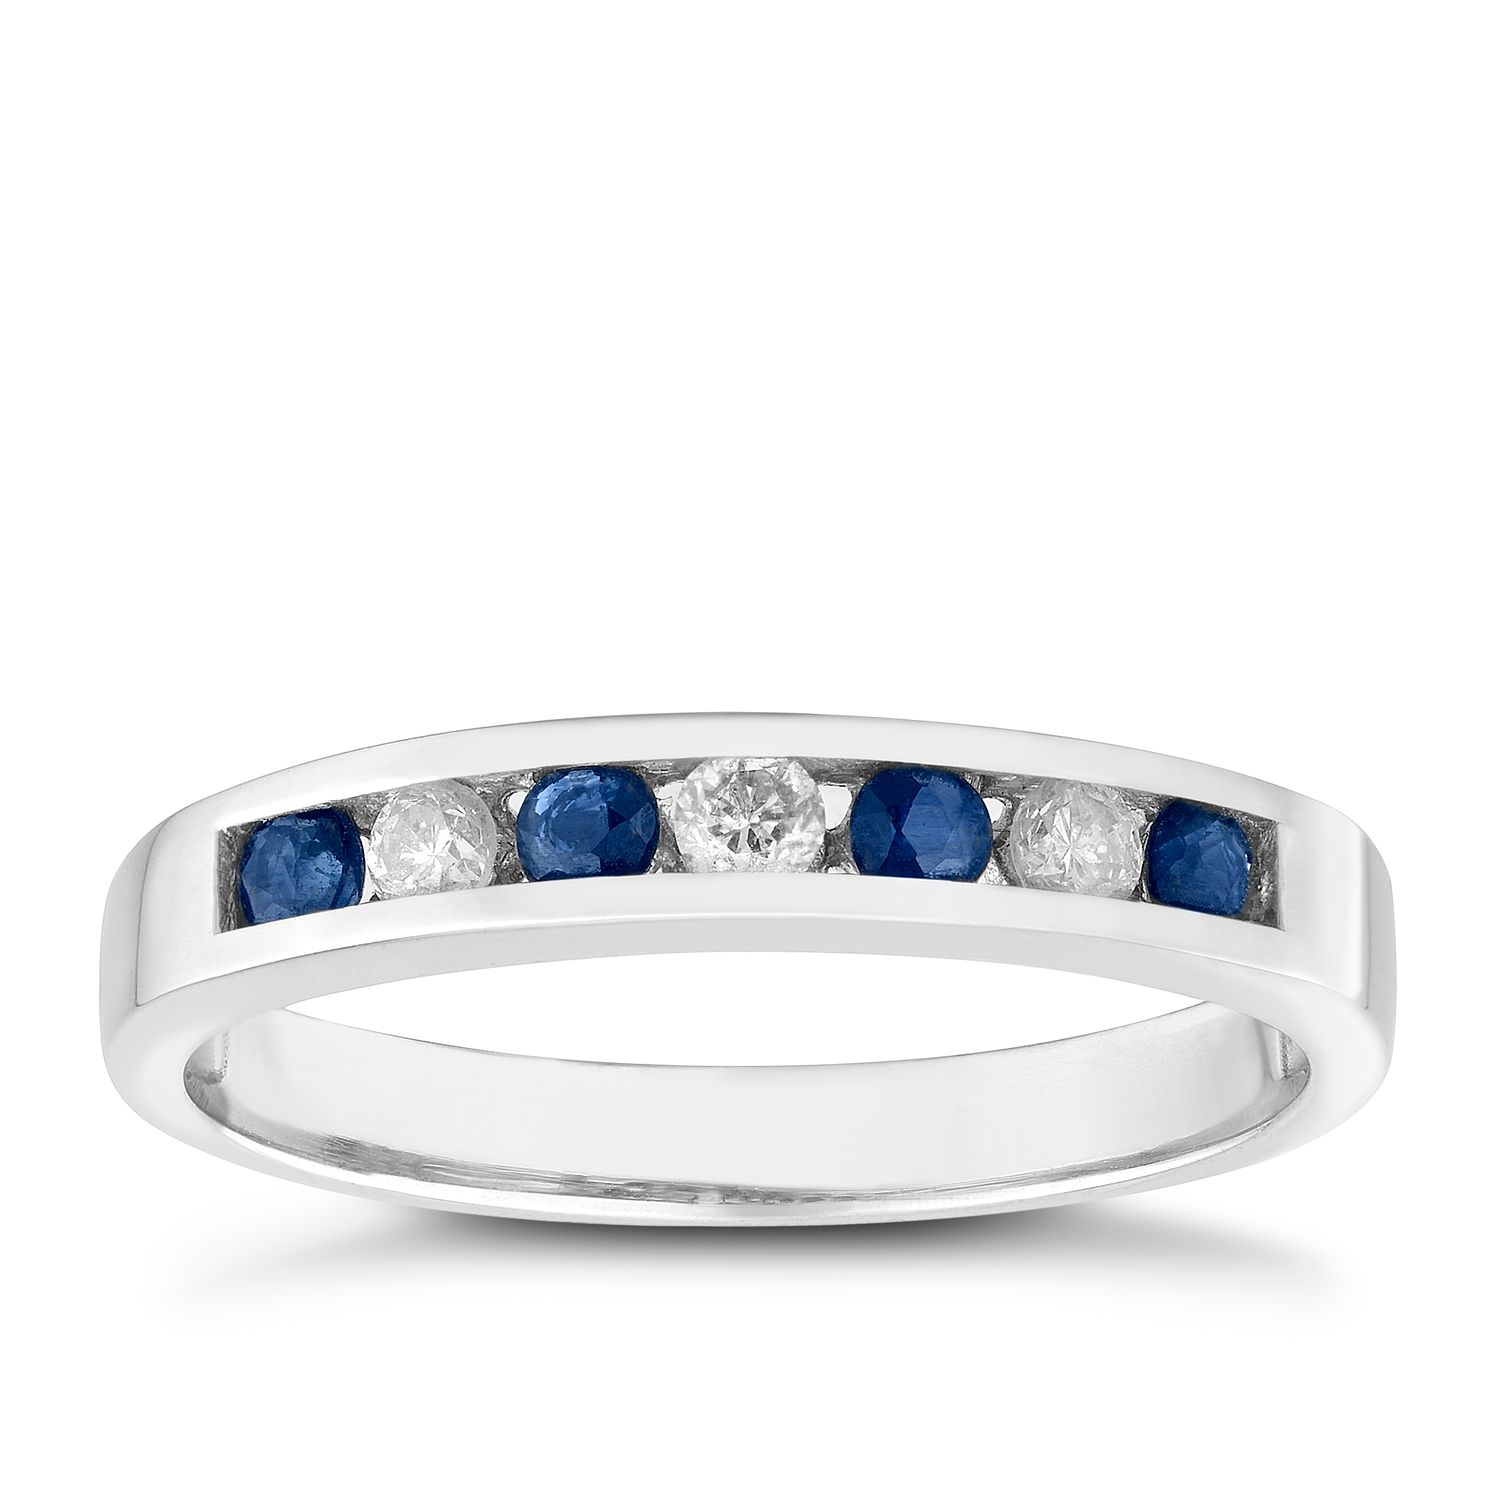 ring designers insp brooks sapphire lola august faceted umba eternity band shop green bands